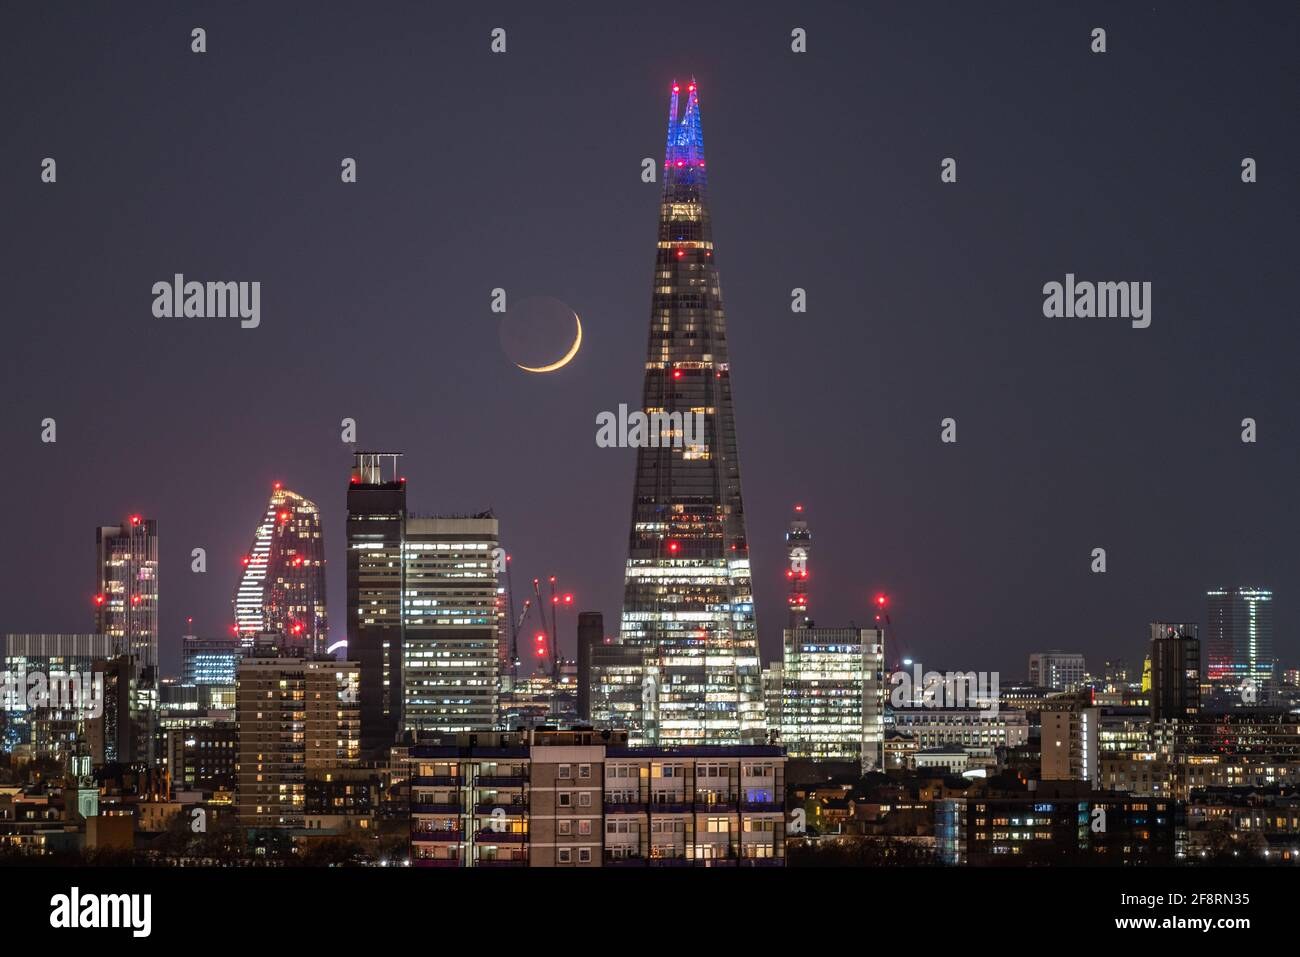 London, UK. 14th April, 2021. UK Weather: A Waxing Crescent moon sets in the late hours of Wednesday moving past The Shard skyscraper building following a north westerly direction. Credit: Guy Corbishley/Alamy Live News Stock Photo